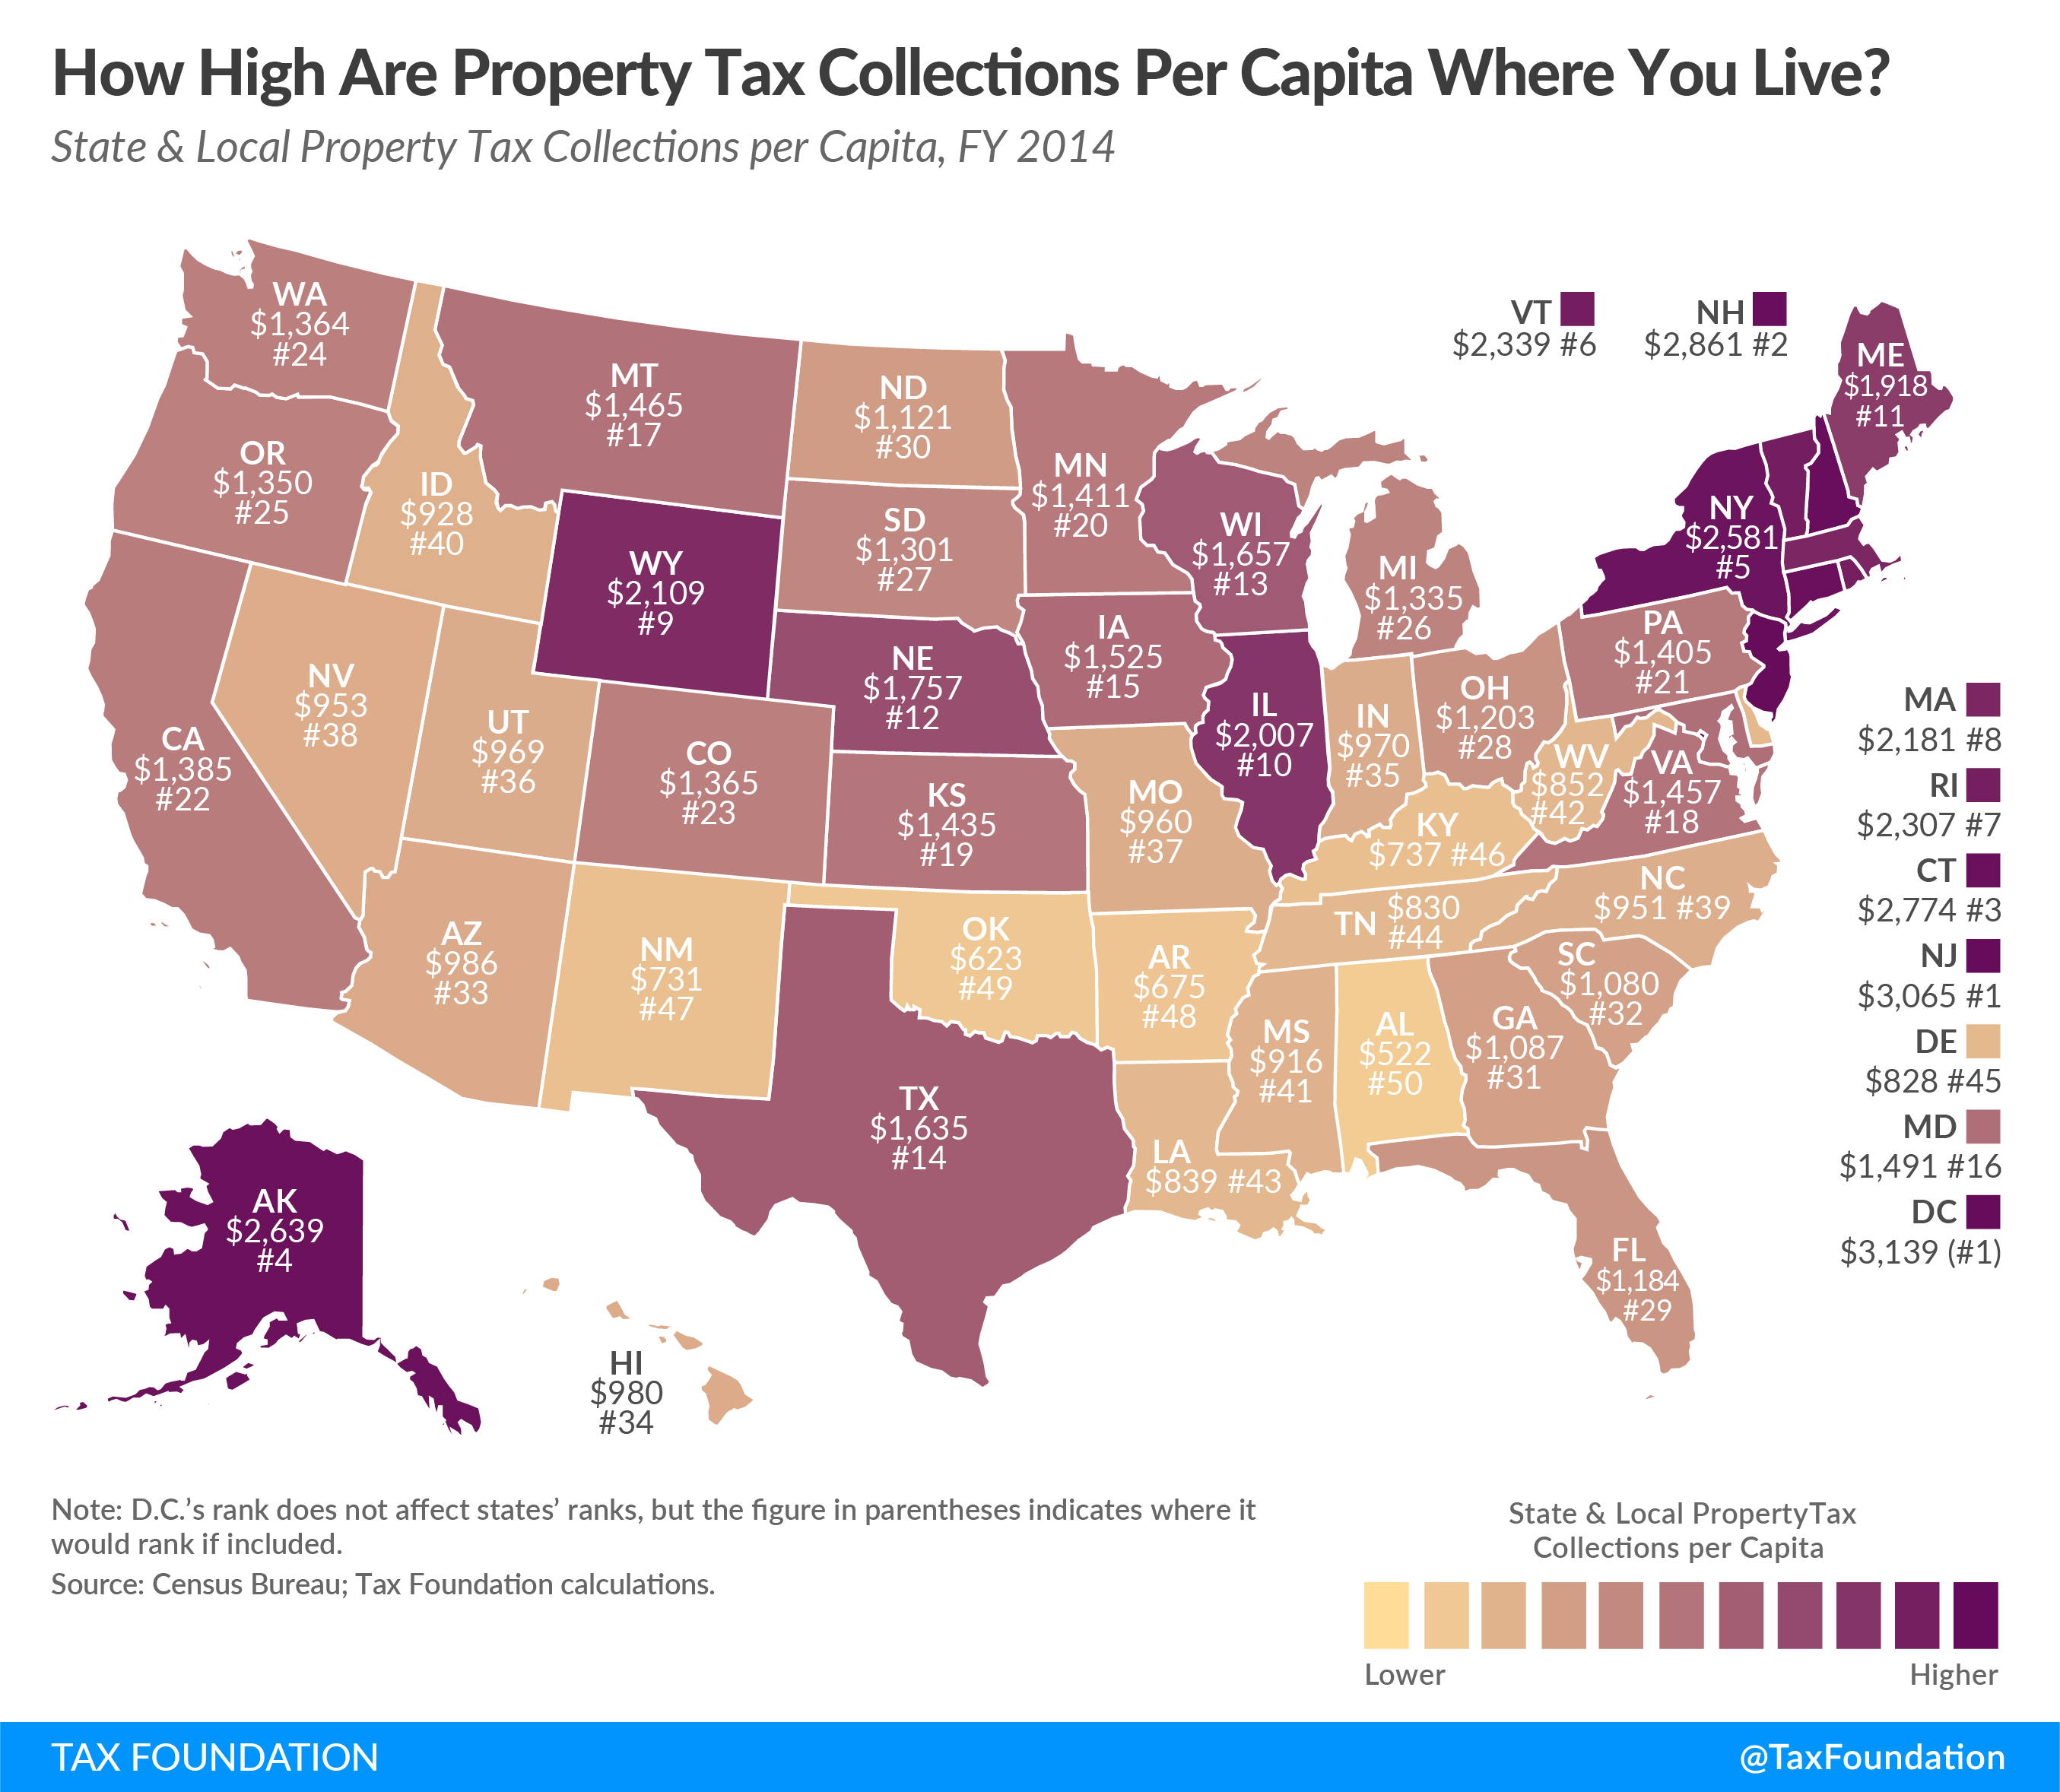 State and Local Property Taxes Per Capita